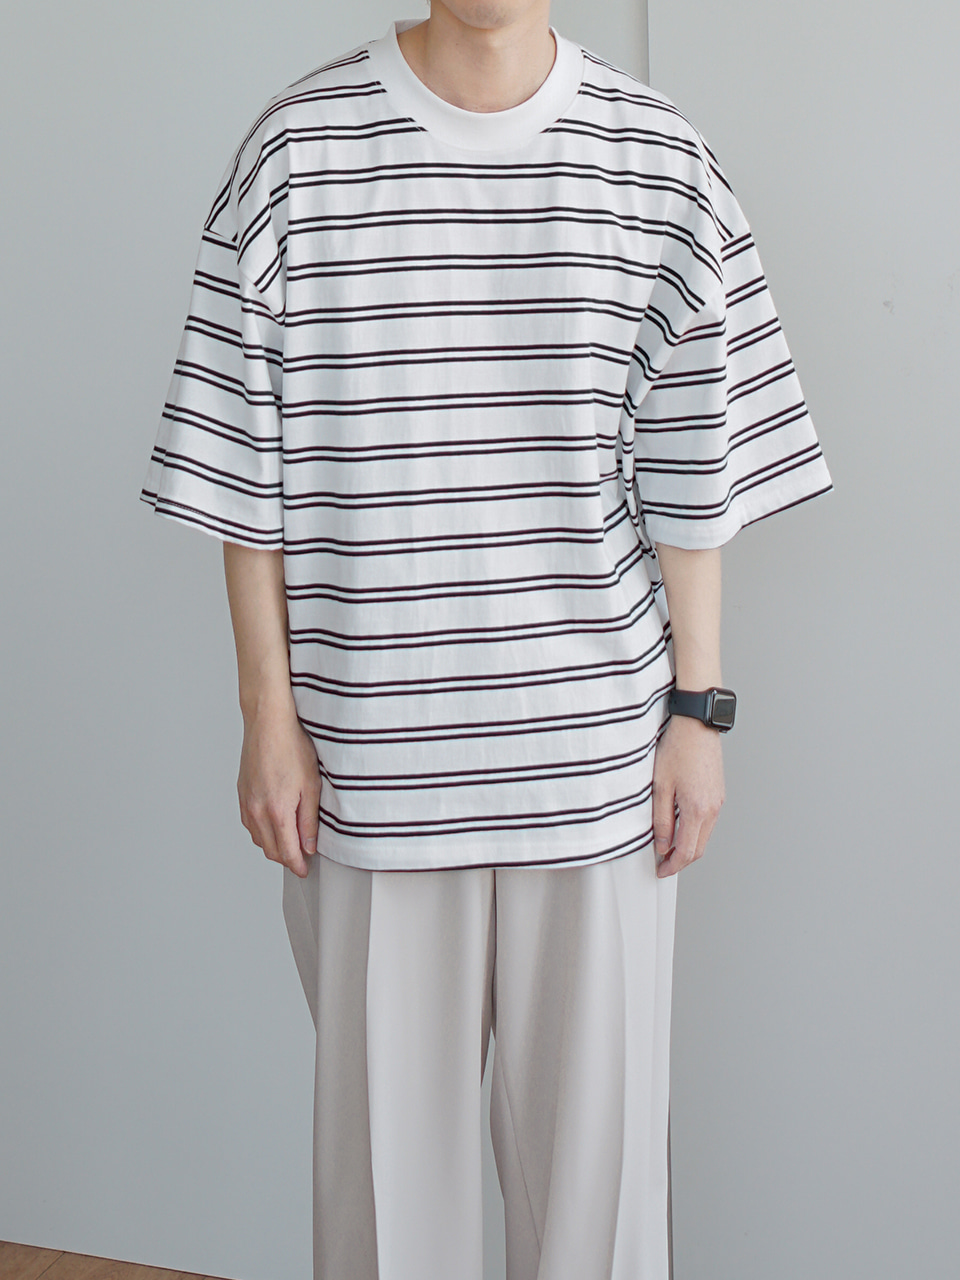 On Stripe Over Half Tee (2color)